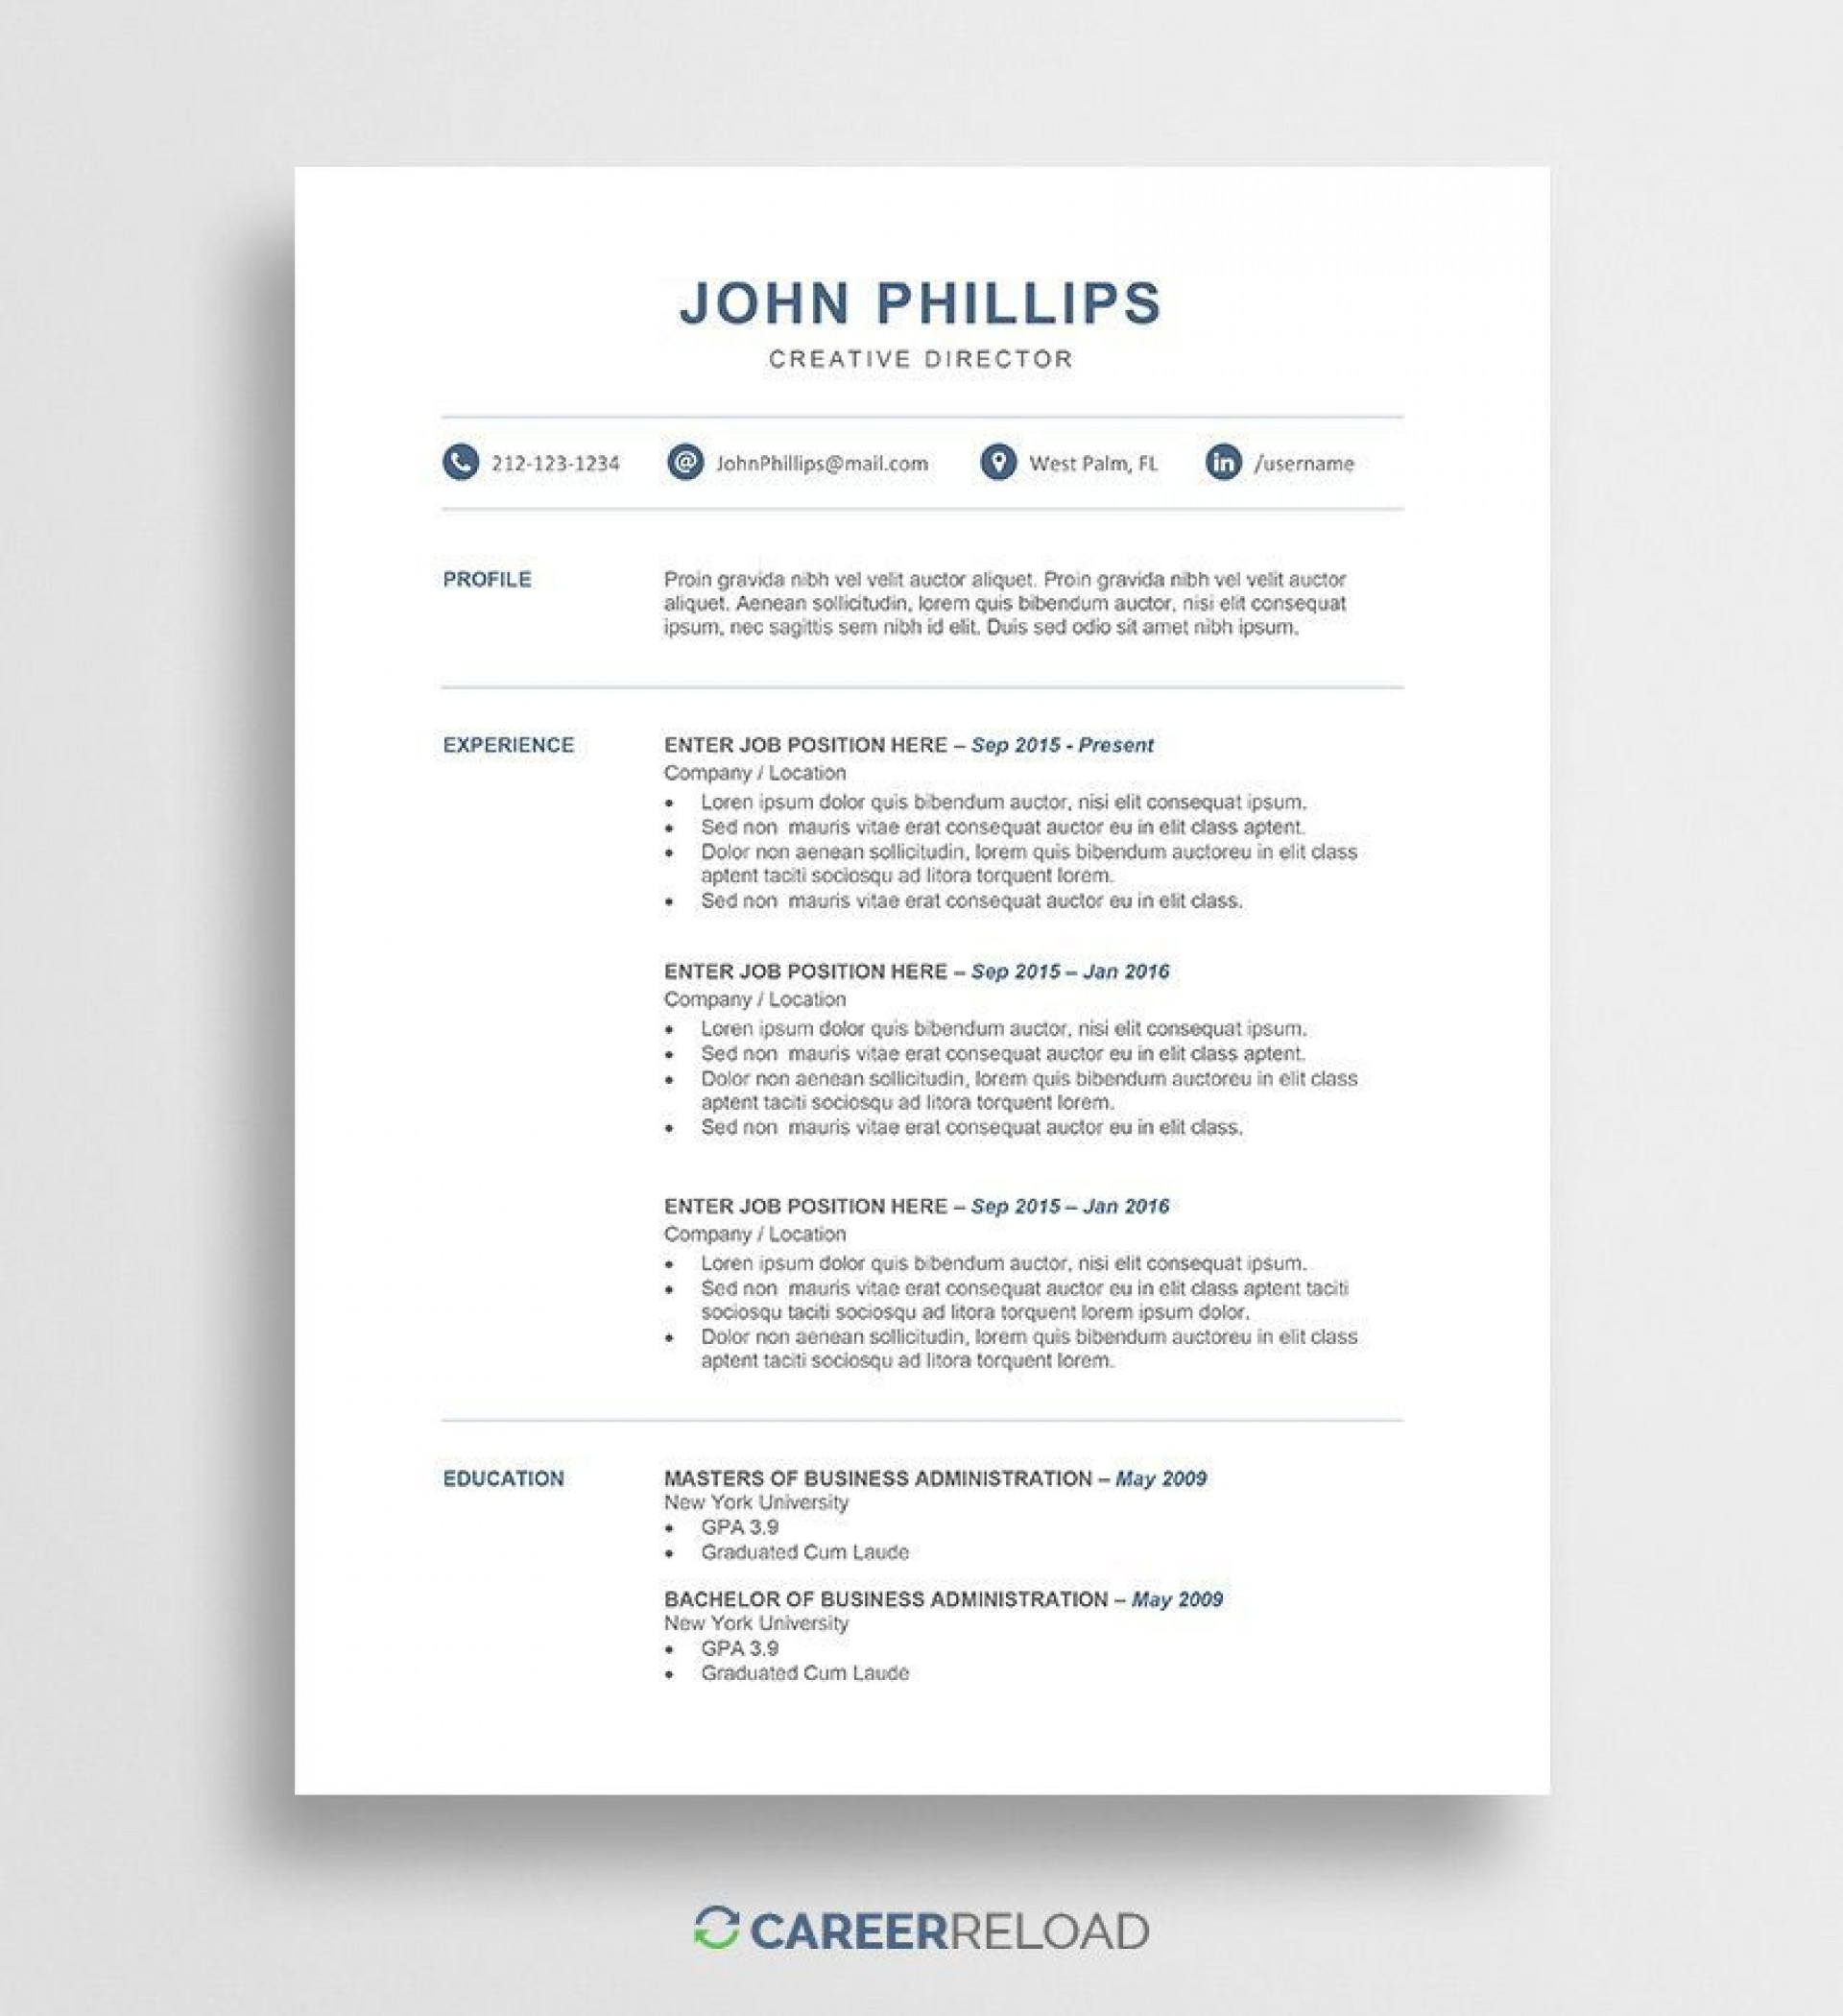 011 Top Download Resume Template Free Microsoft Word Example  2010 Attractive M Simple For1920